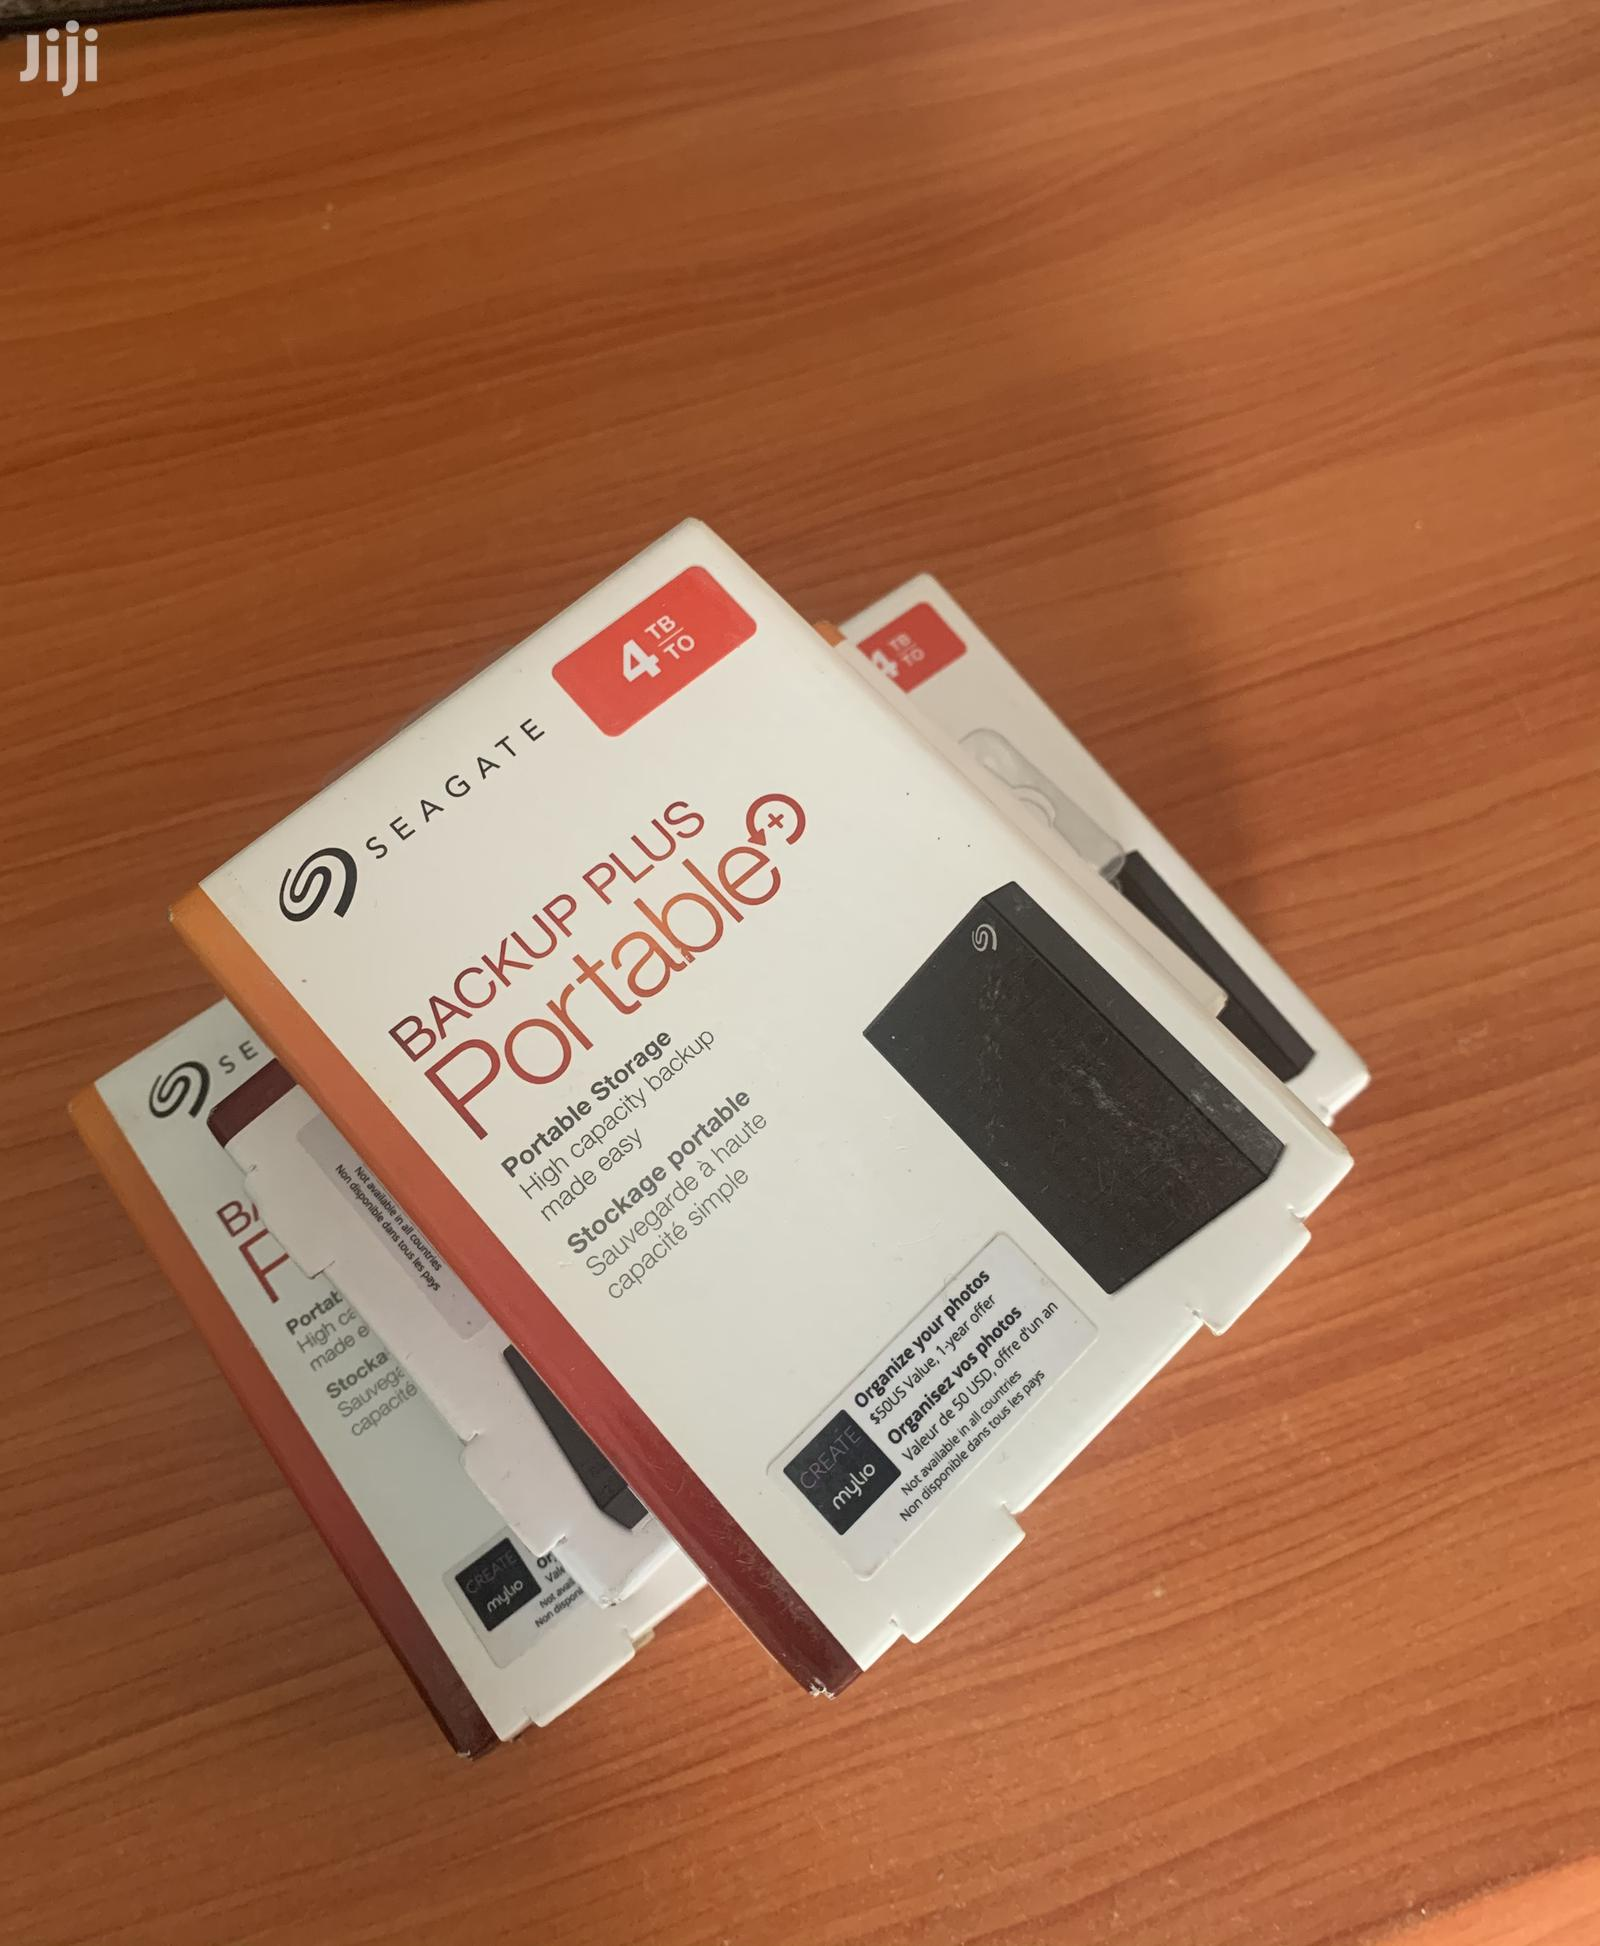 4tb External Hard Disk Drive | Computer Accessories  for sale in Osu, Greater Accra, Ghana